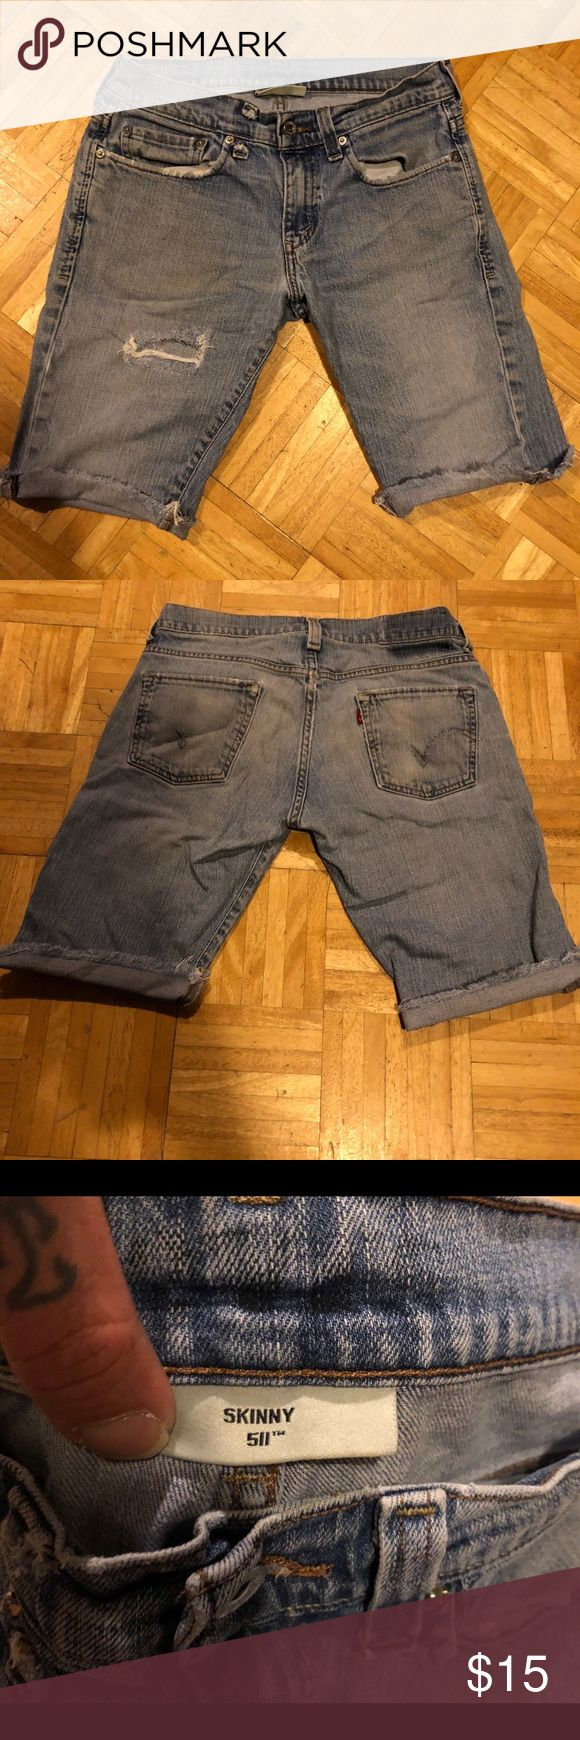 LEVIS 510 SUPER SKINNY CUTOFF BLUE JEAN SHORTS Perfectly tattered and worn for your comfort. Size 31/32 Levi's Shorts Jean Shorts